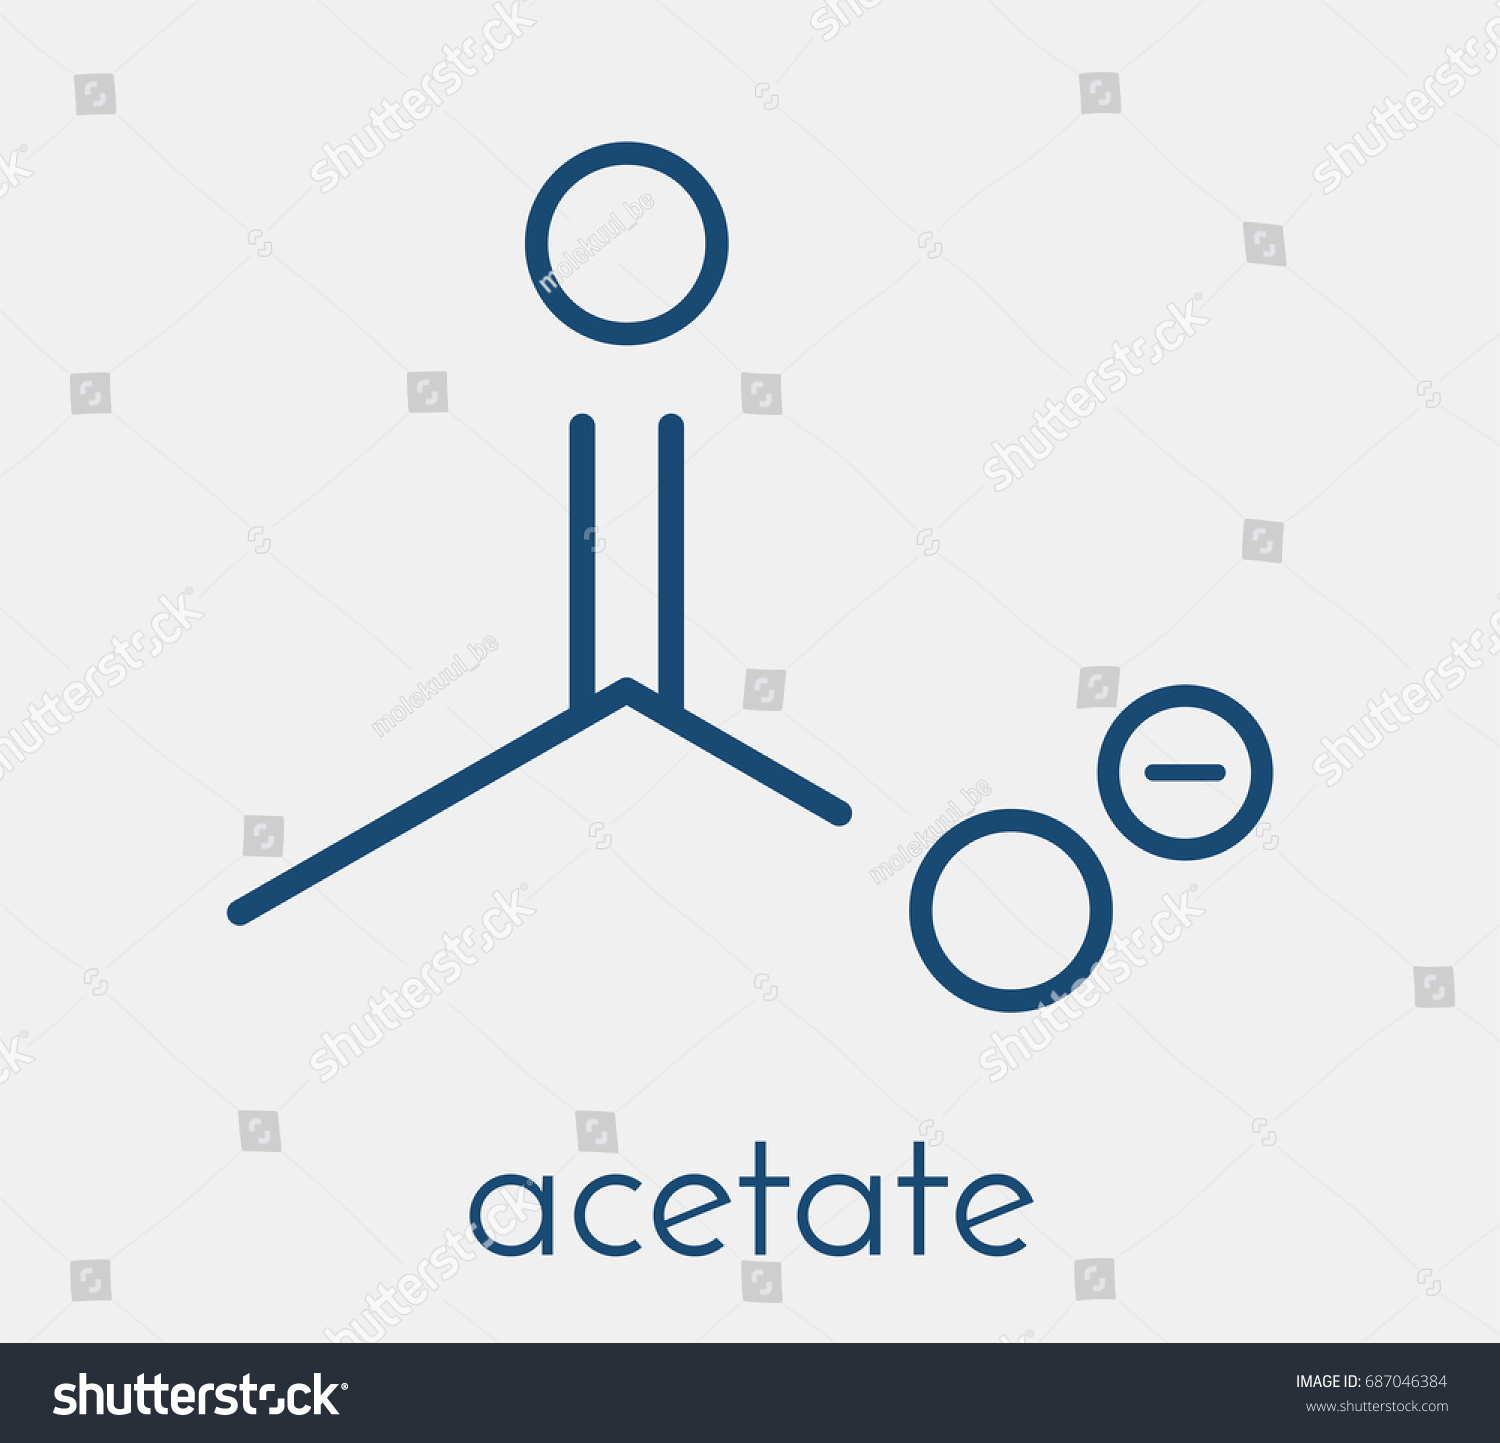 Acetate anion chemical structure skeletal formula stock vector acetate anion chemical structure skeletal formula biocorpaavc